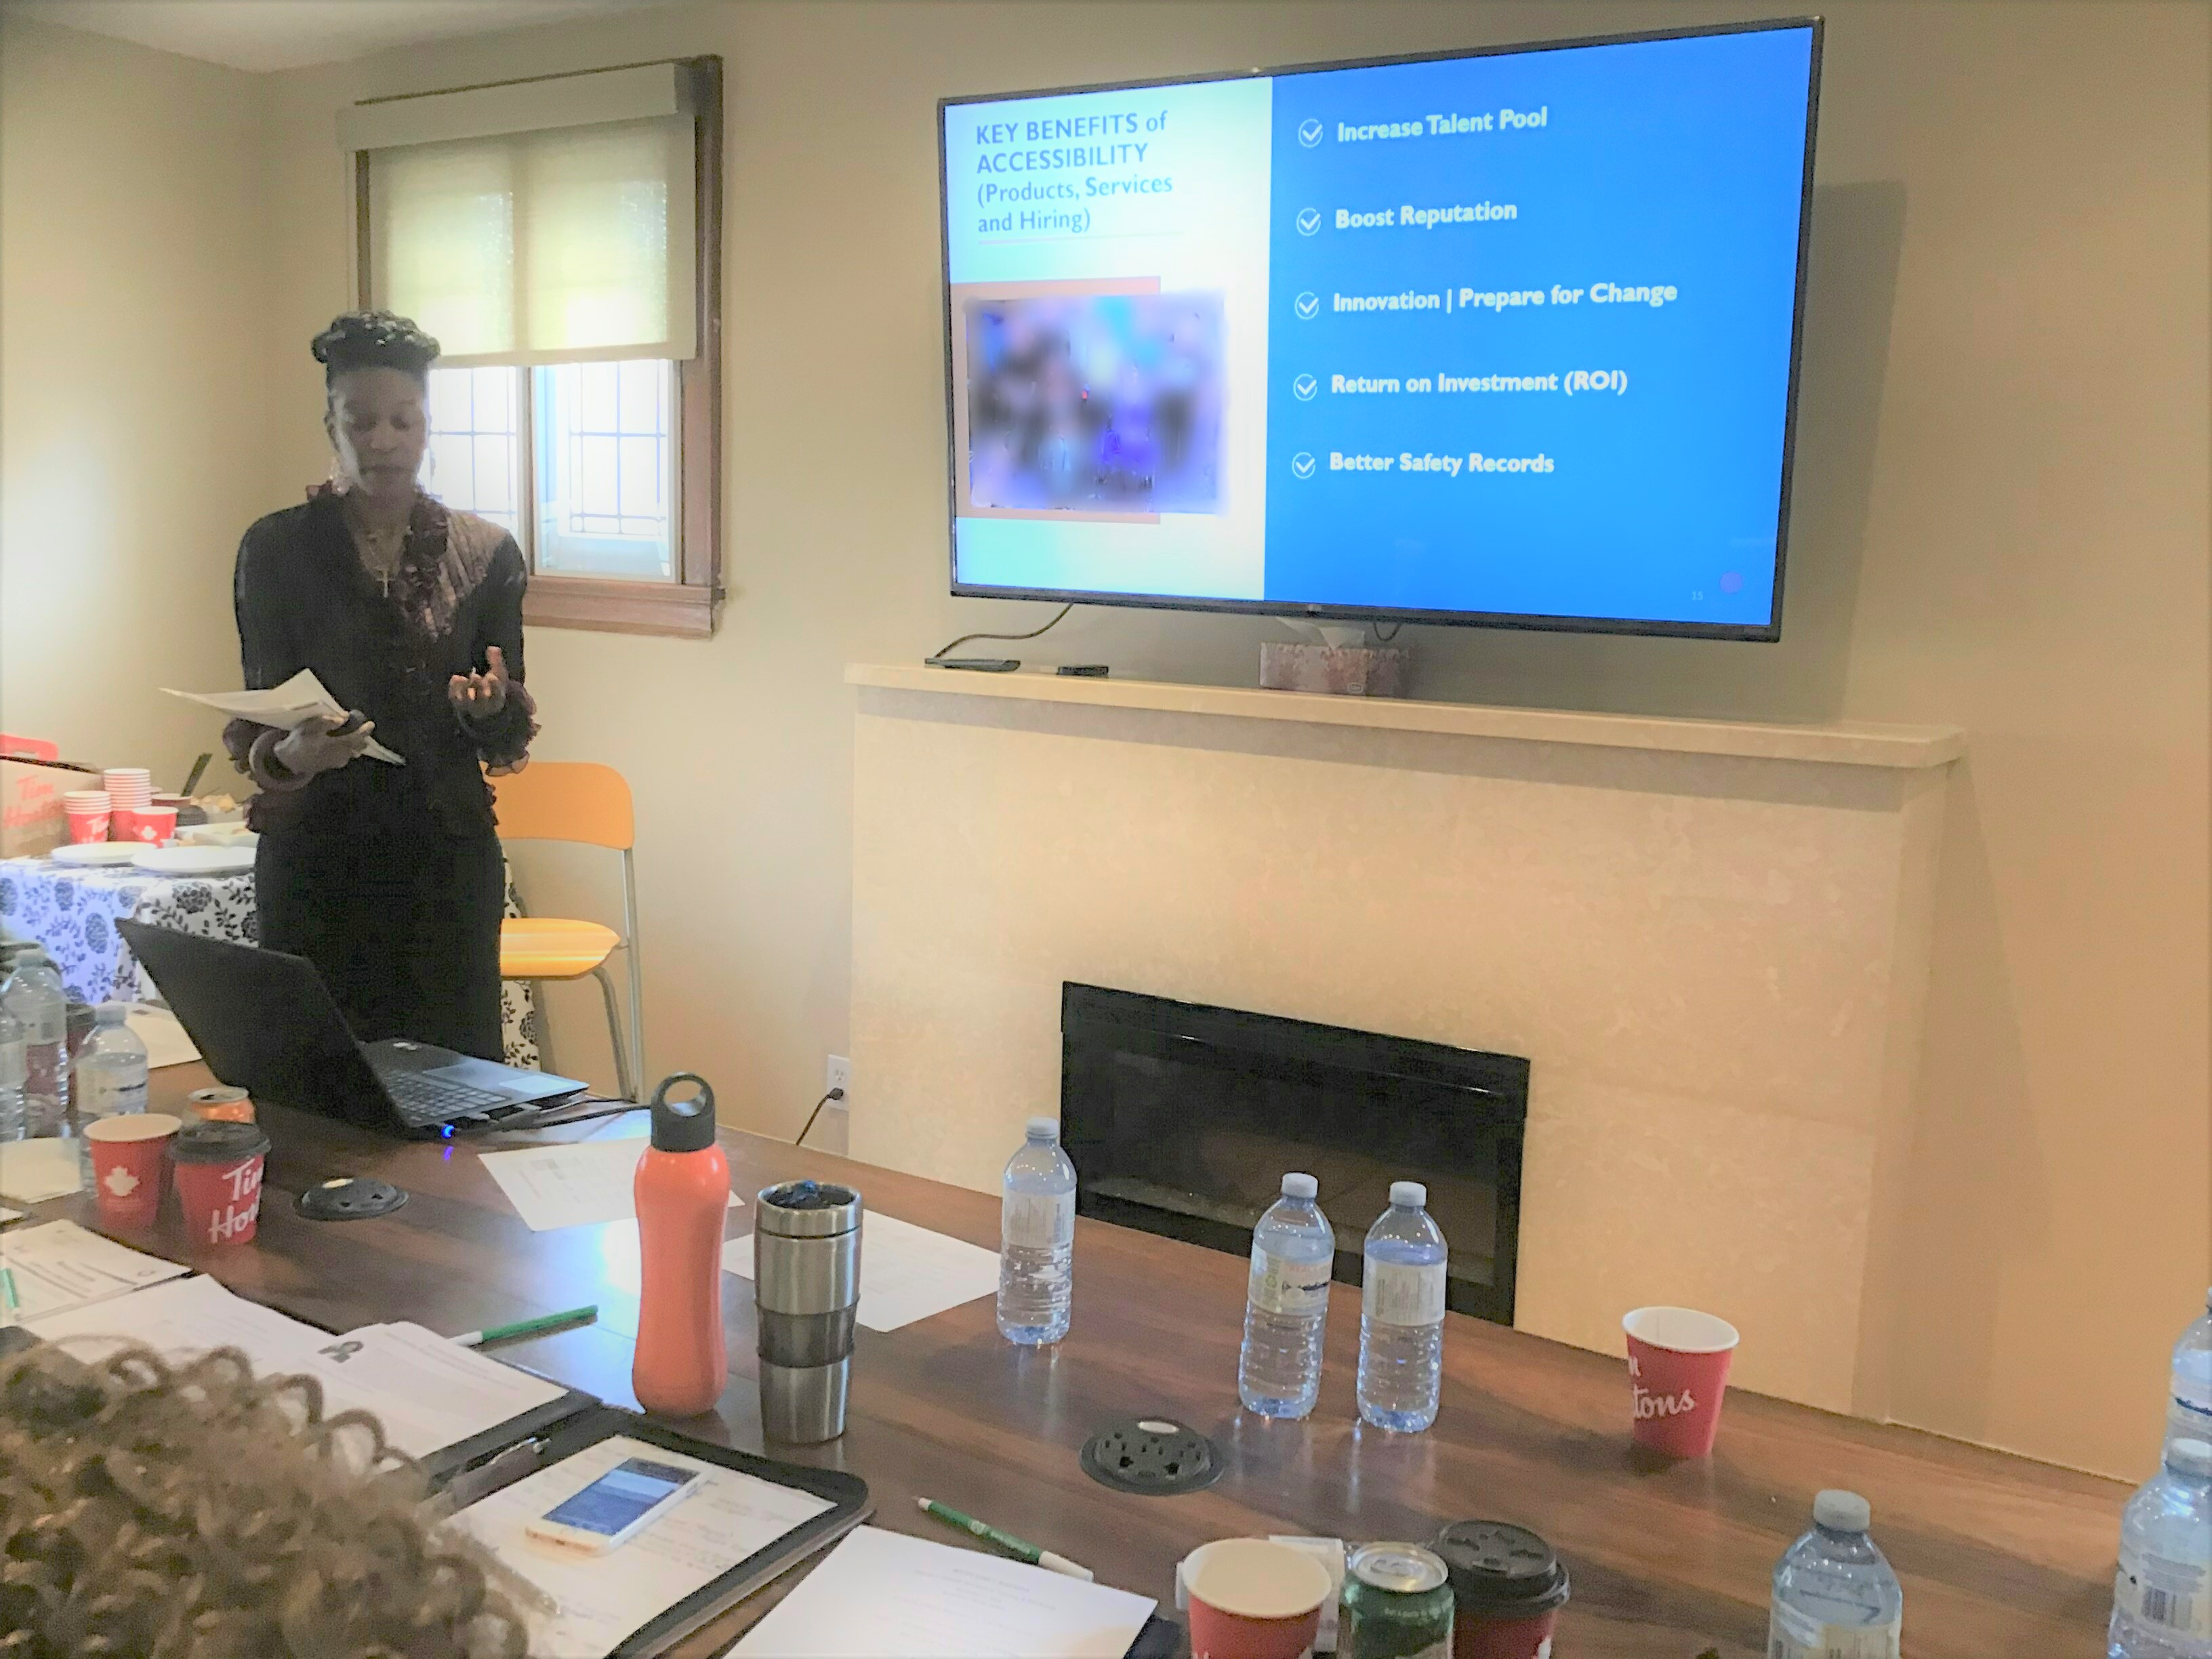 Image of Michelle Buckland providing training at a workshop